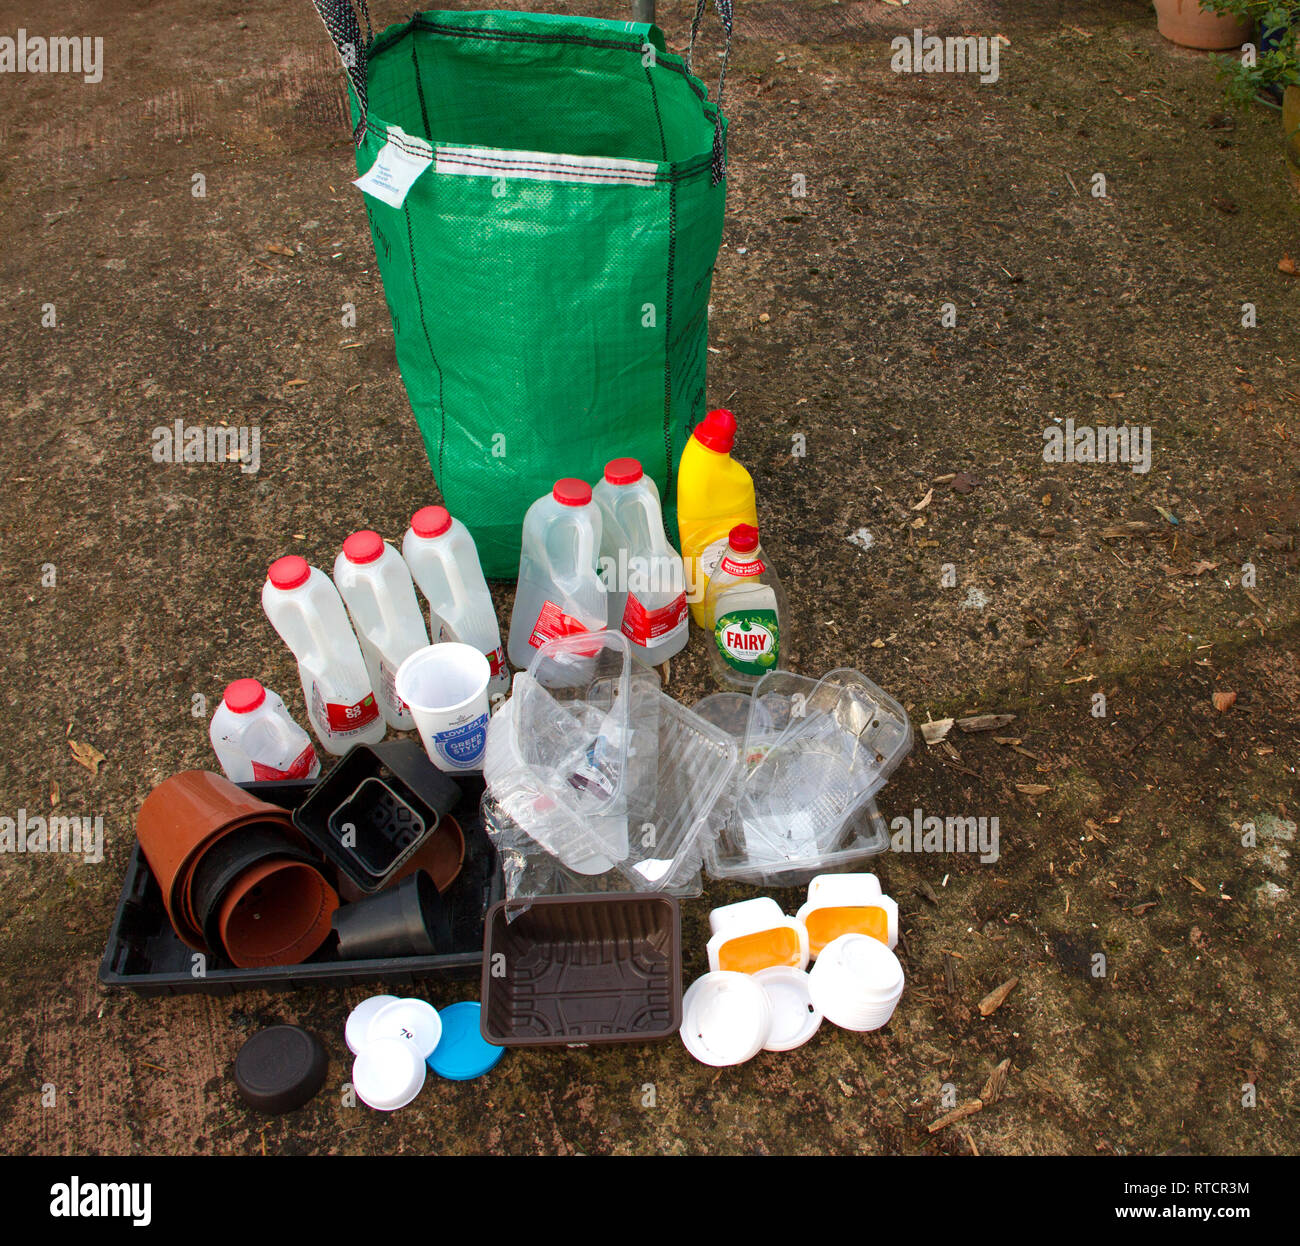 Plastic recycling x 2 weeks - single person household - Stock Image